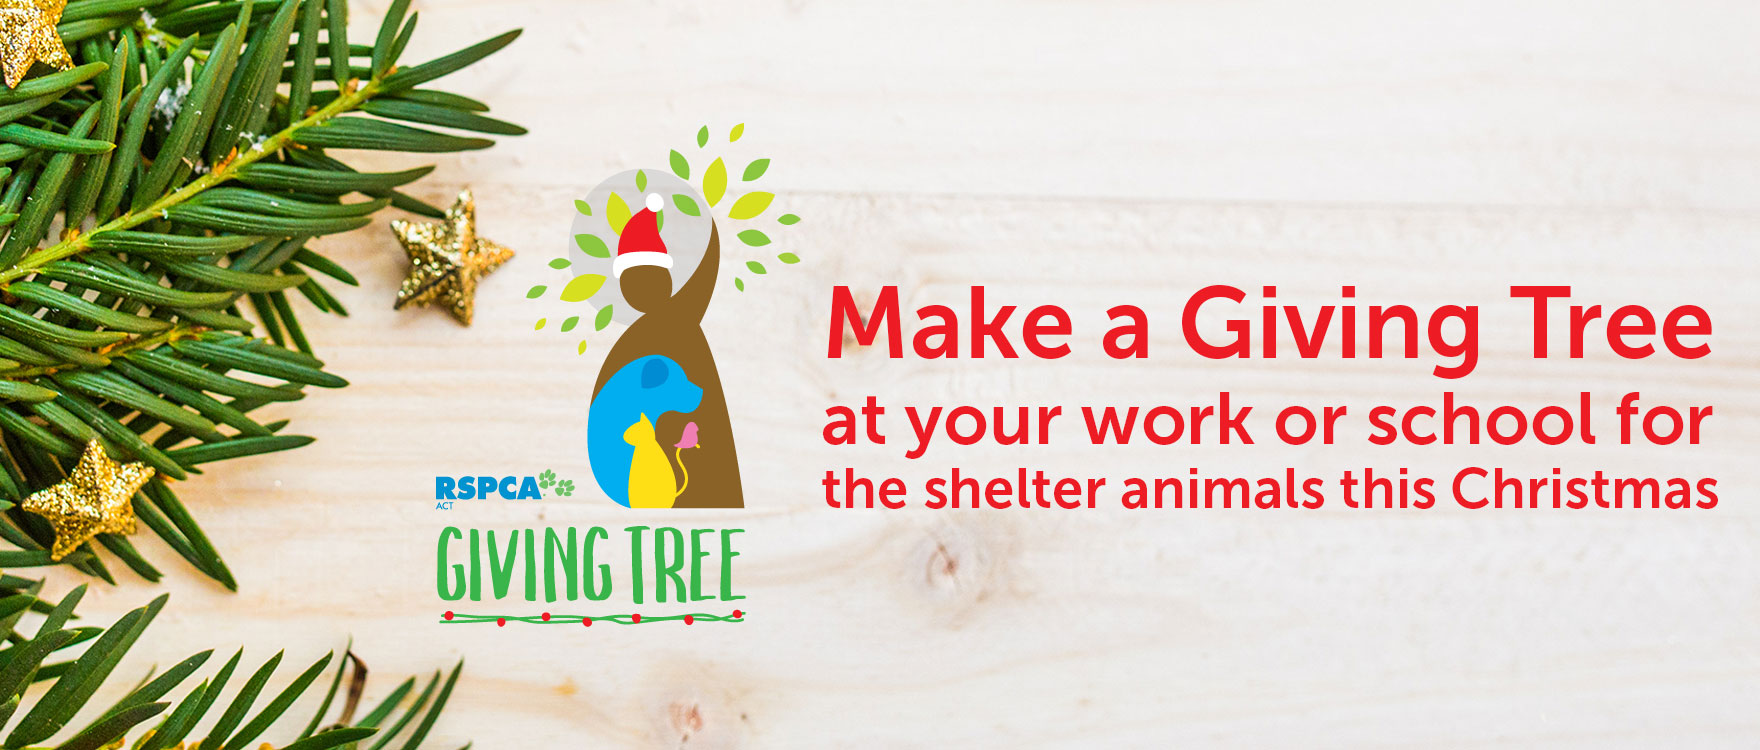 Make a Giving Tree at your work or school for shelter animals this Christmas